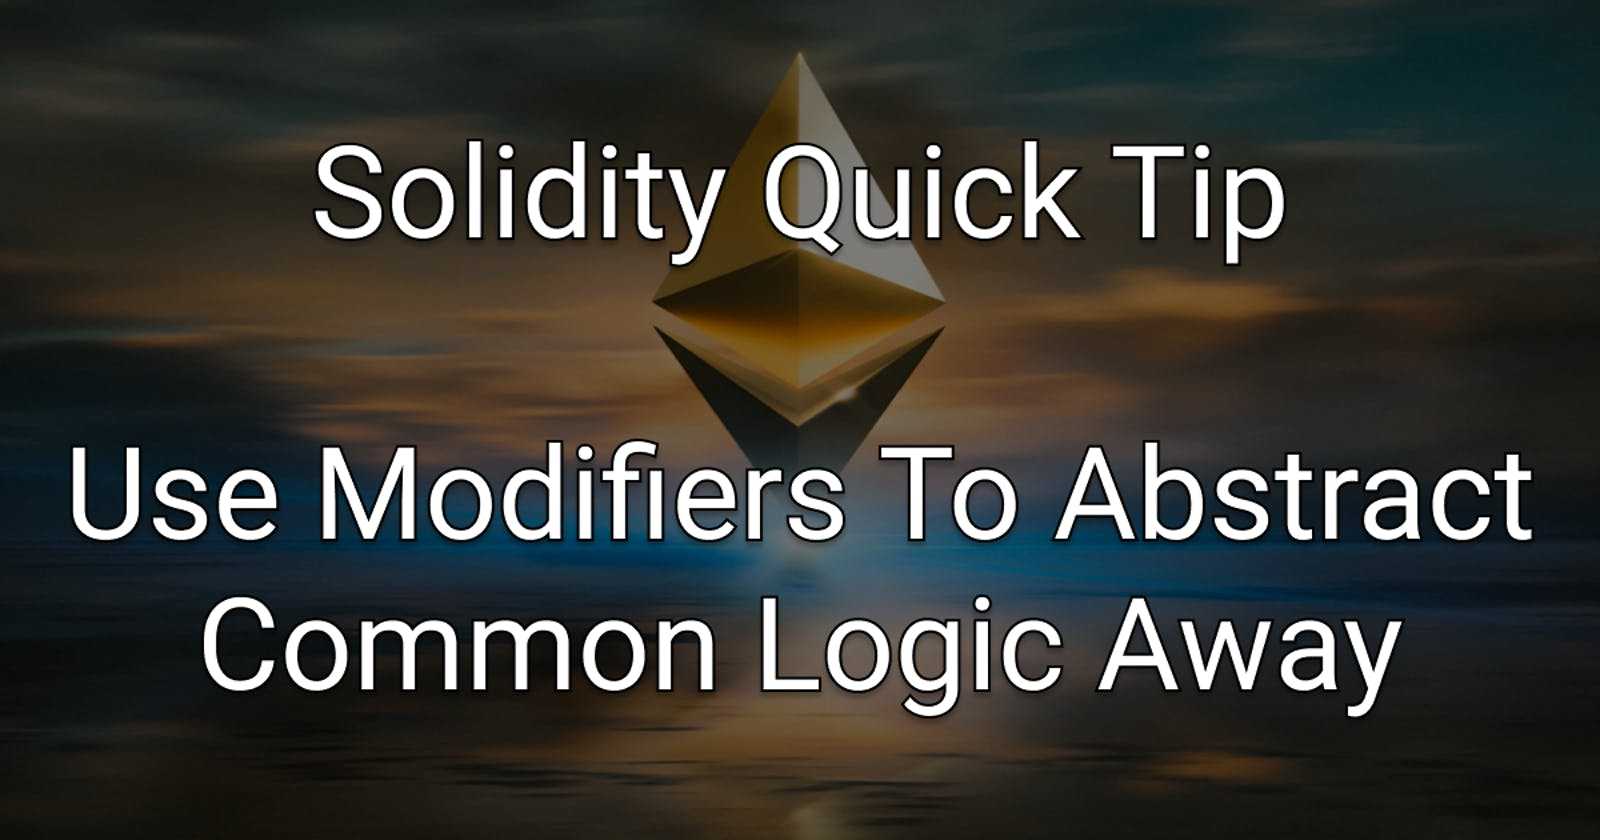 Solidity Quick Tip: Use Modifiers To Abstract Common Logic Away